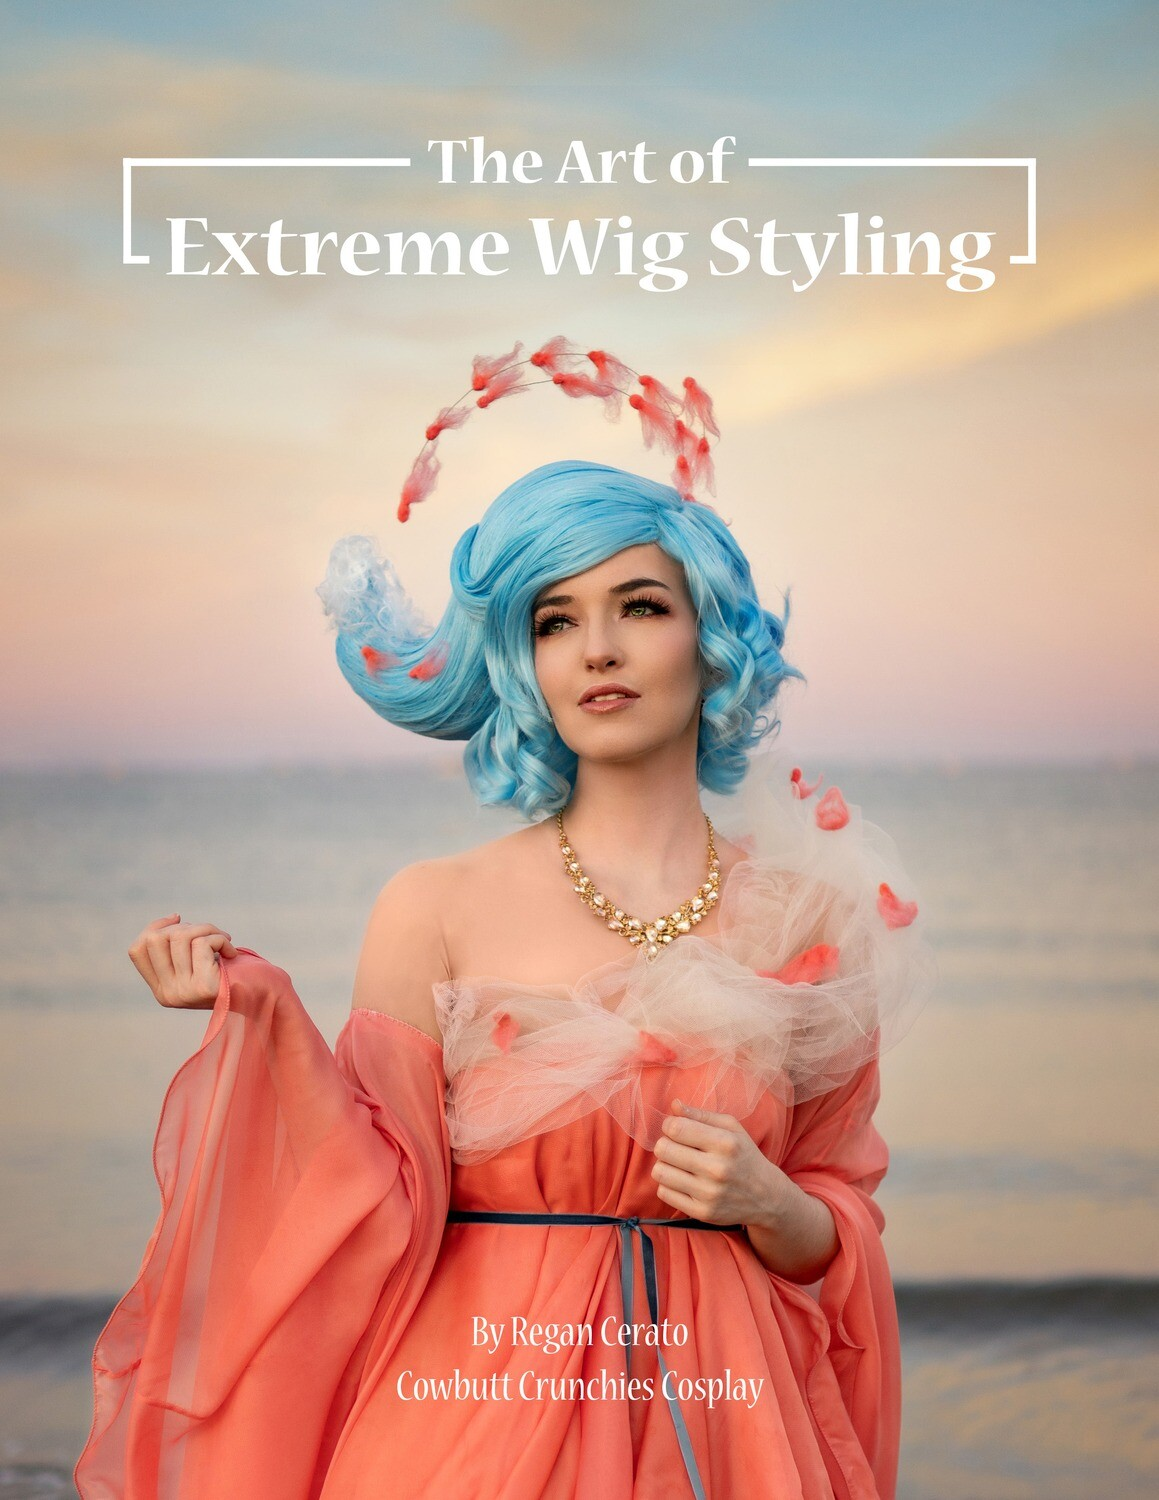 ON SALE! The Art of Extreme Wig Styling - Softcover